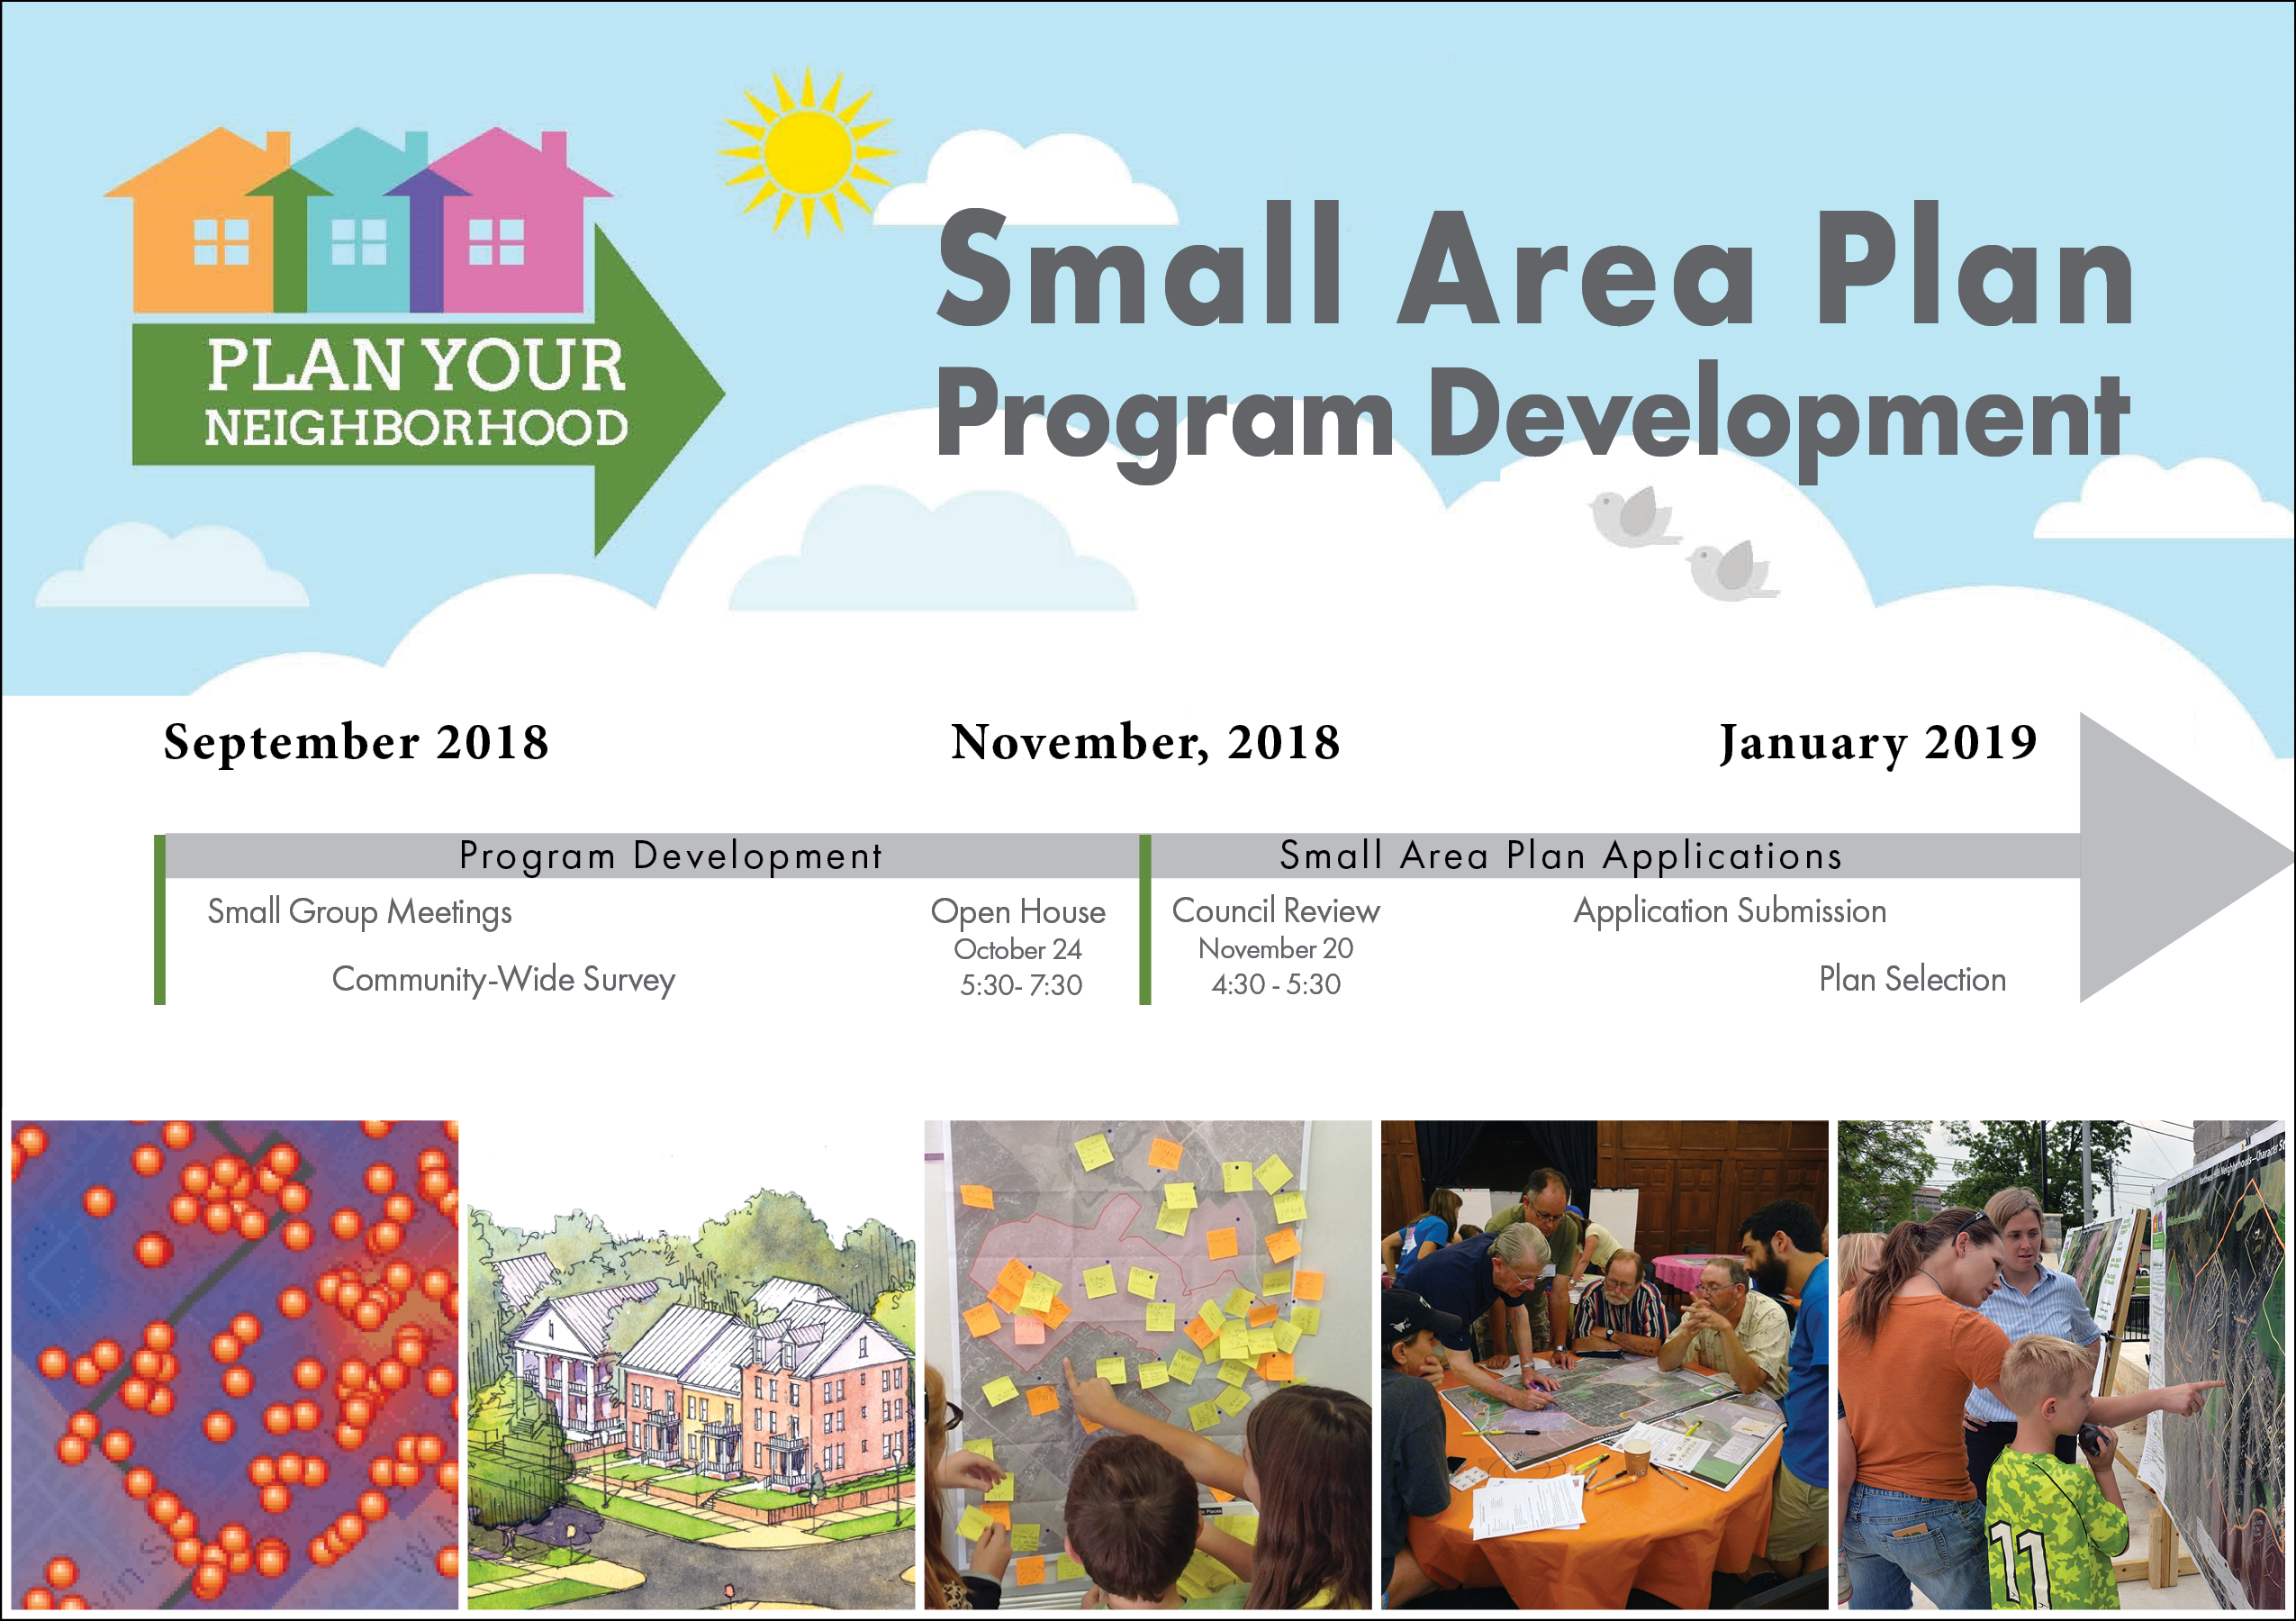 Small Area Plan Program Development